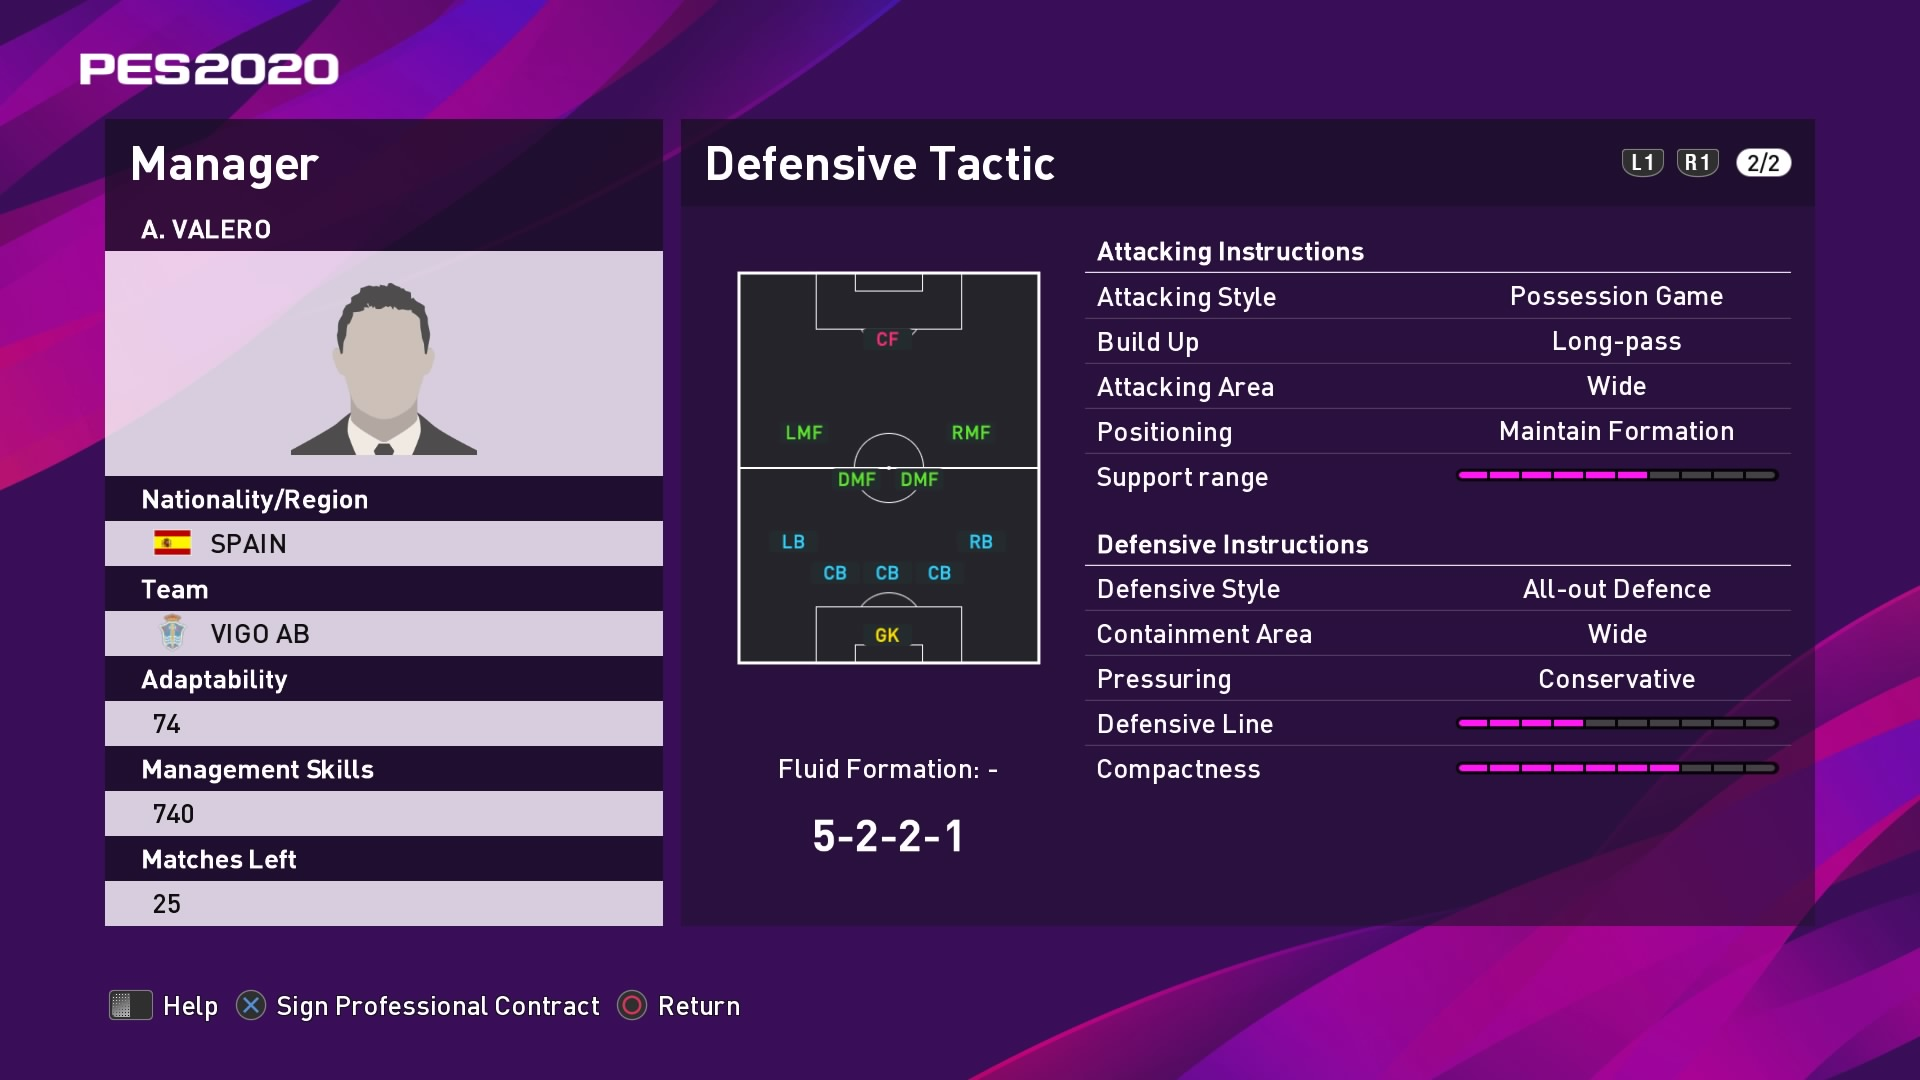 A. Valero (Óscar) Defensive Tactic in PES 2020 myClub